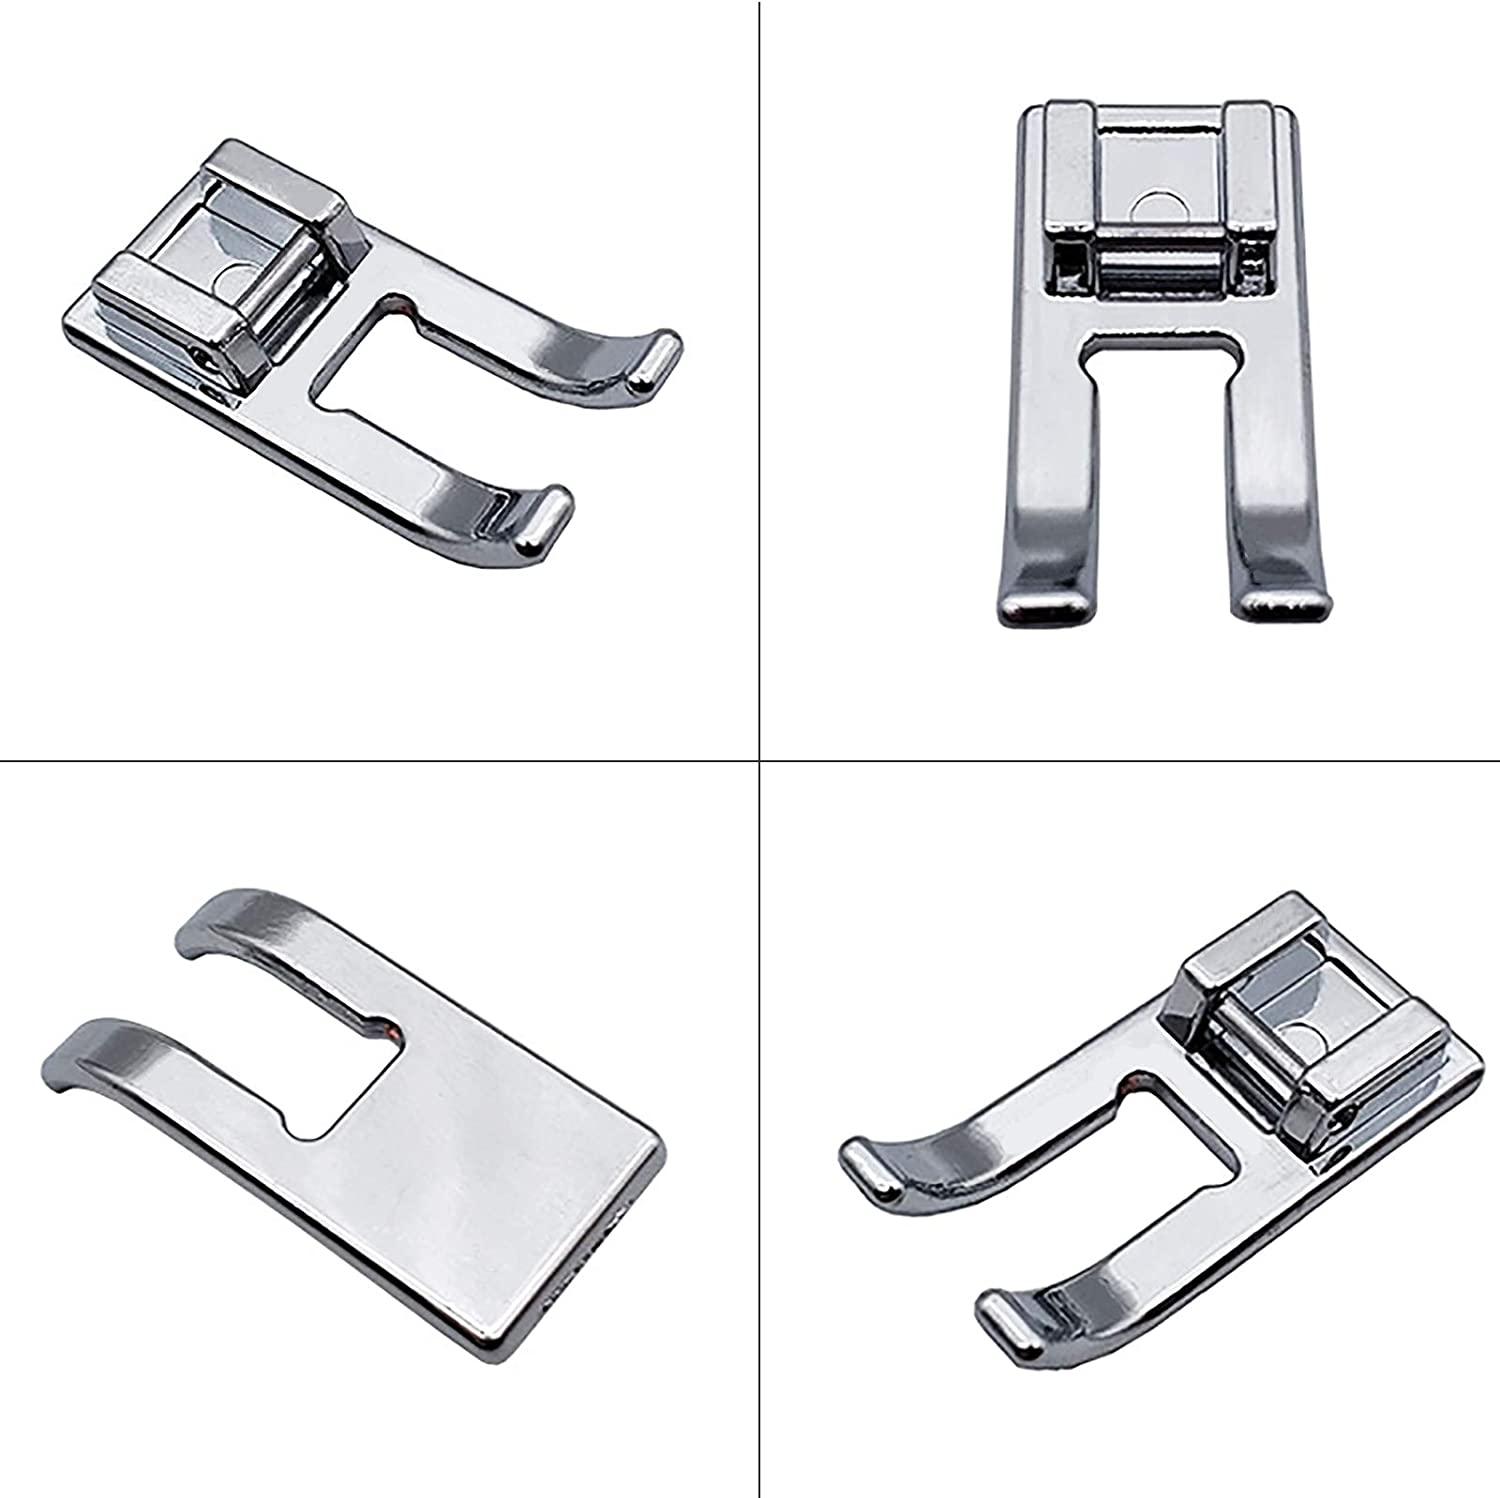 VANICE Snap On Open Toe Foot Appliqu/é Presser Foot for Brother,Singer,Babylock,Elna,Kenmore Sewing Machine